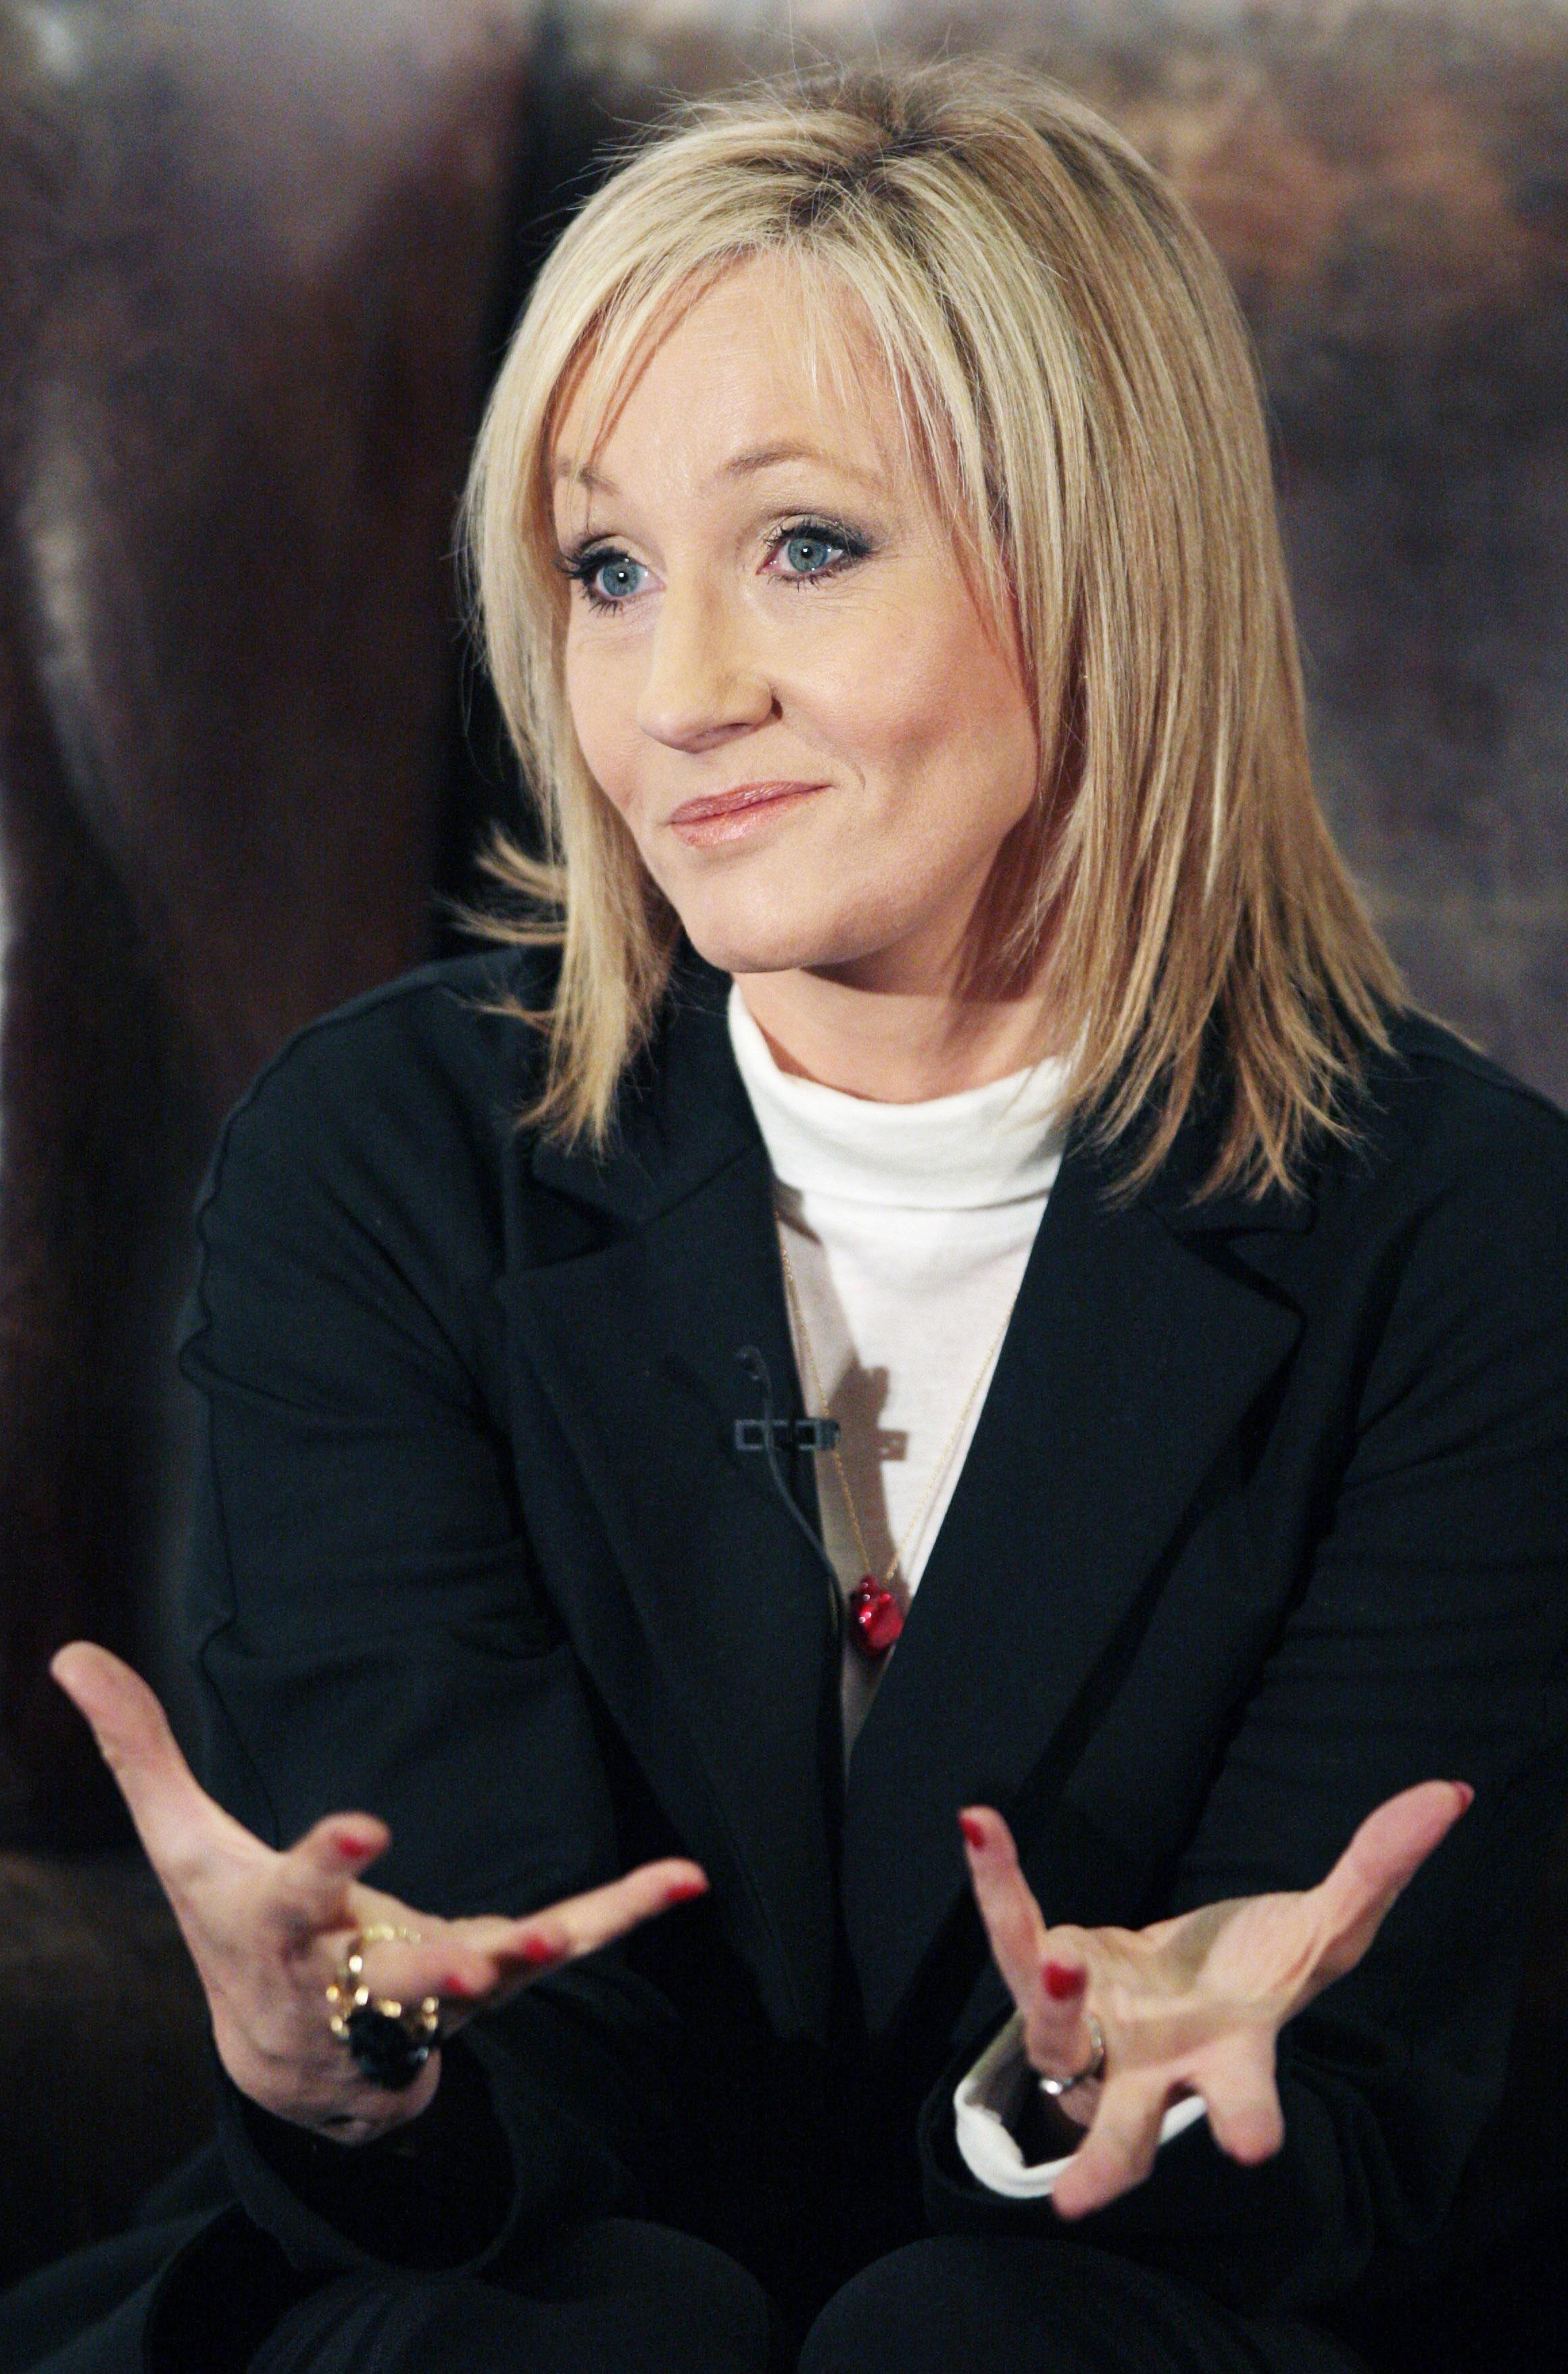 J.K. Rowling with her hands raised with palms up